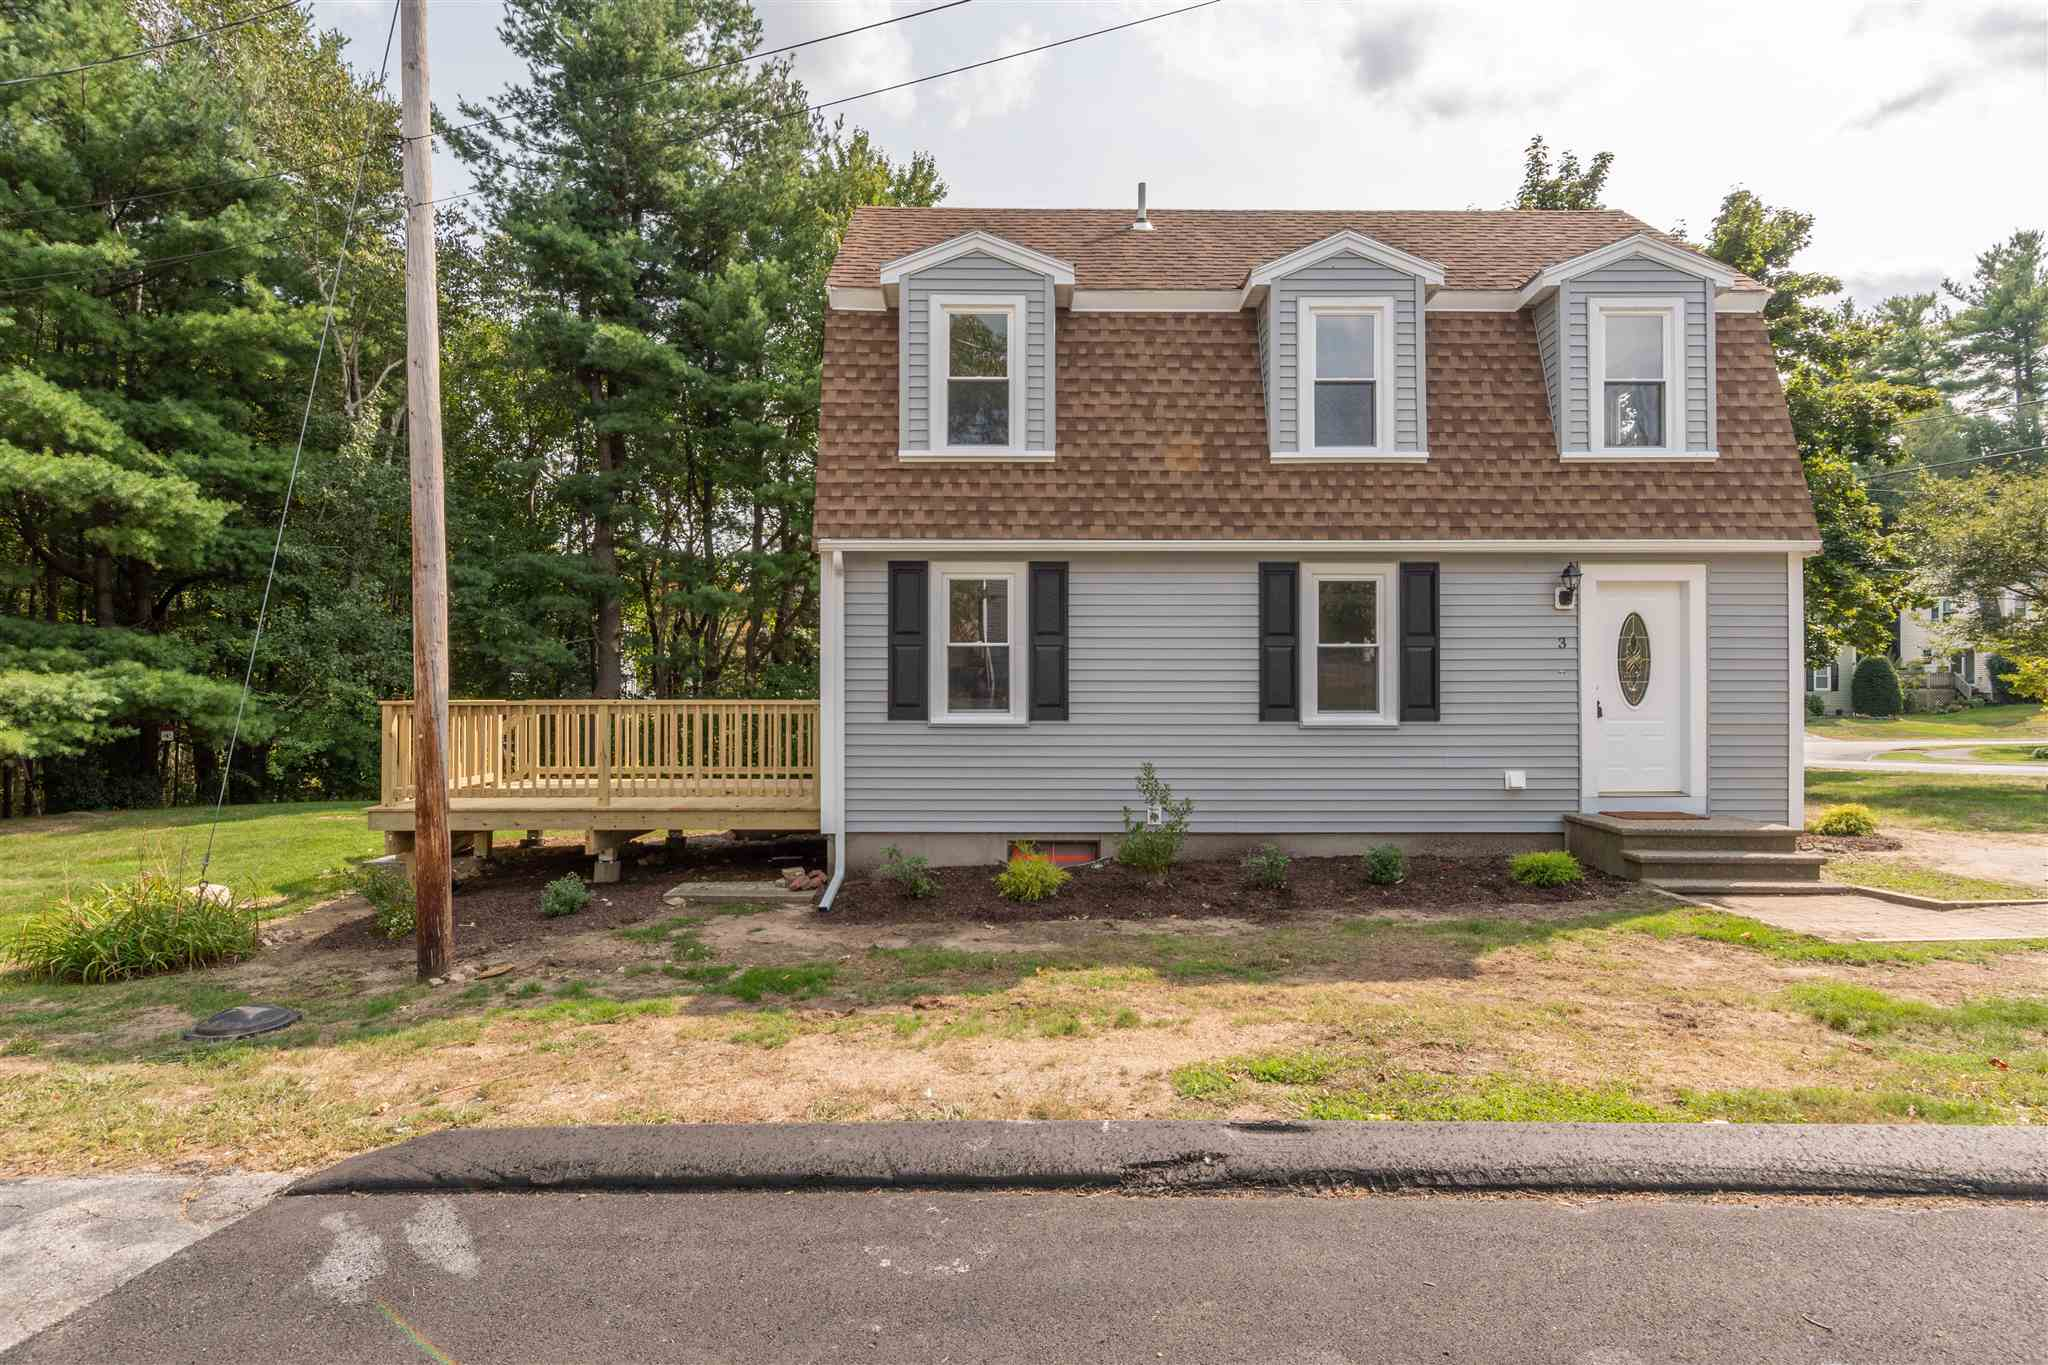 MLS 4829652: 3 Riesling Place-Unit 3, Nashua NH